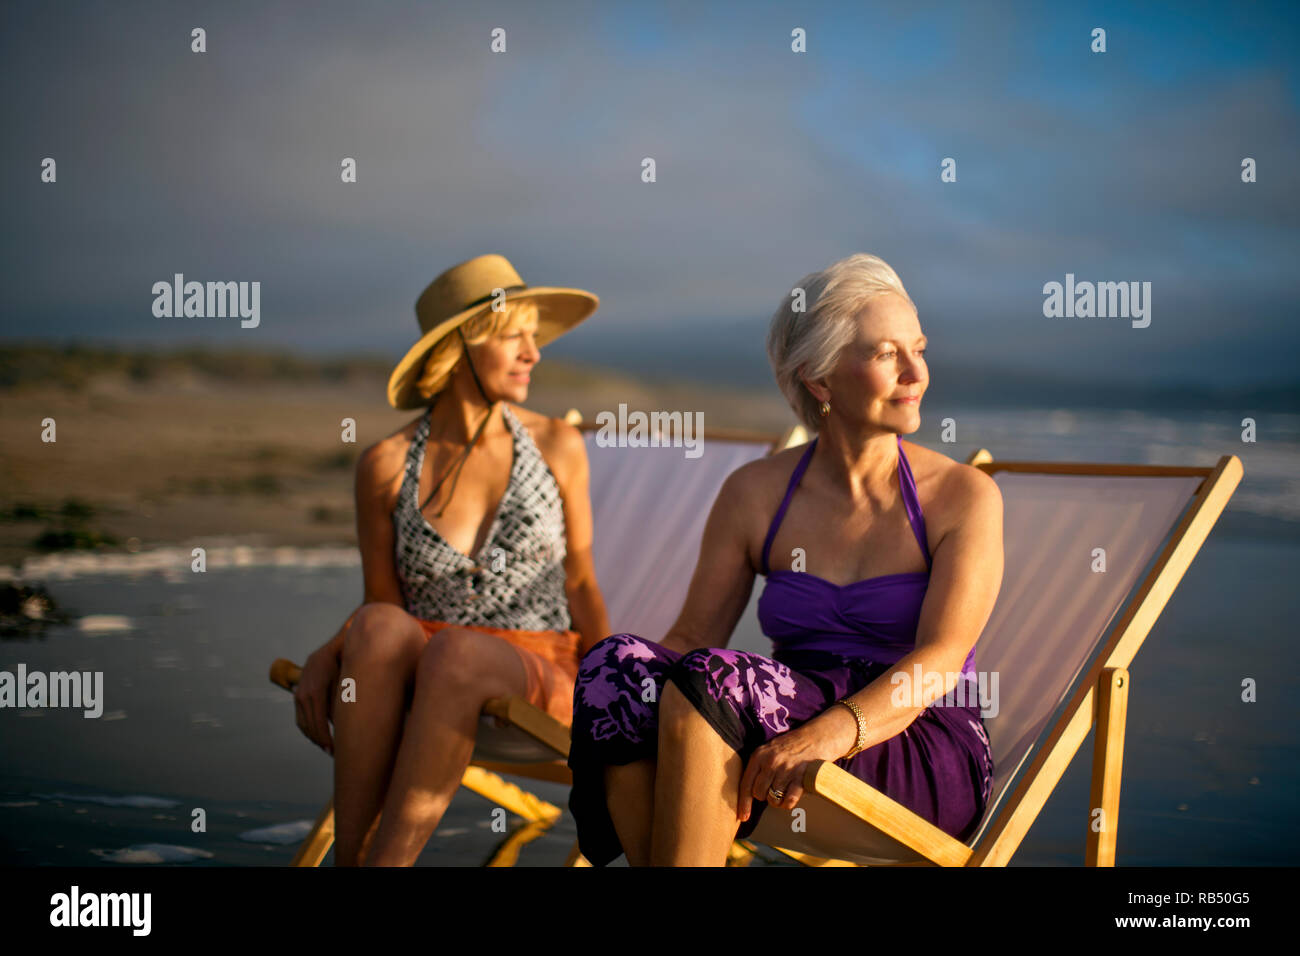 Mature woman and friend in swimsuits on beach stock photos